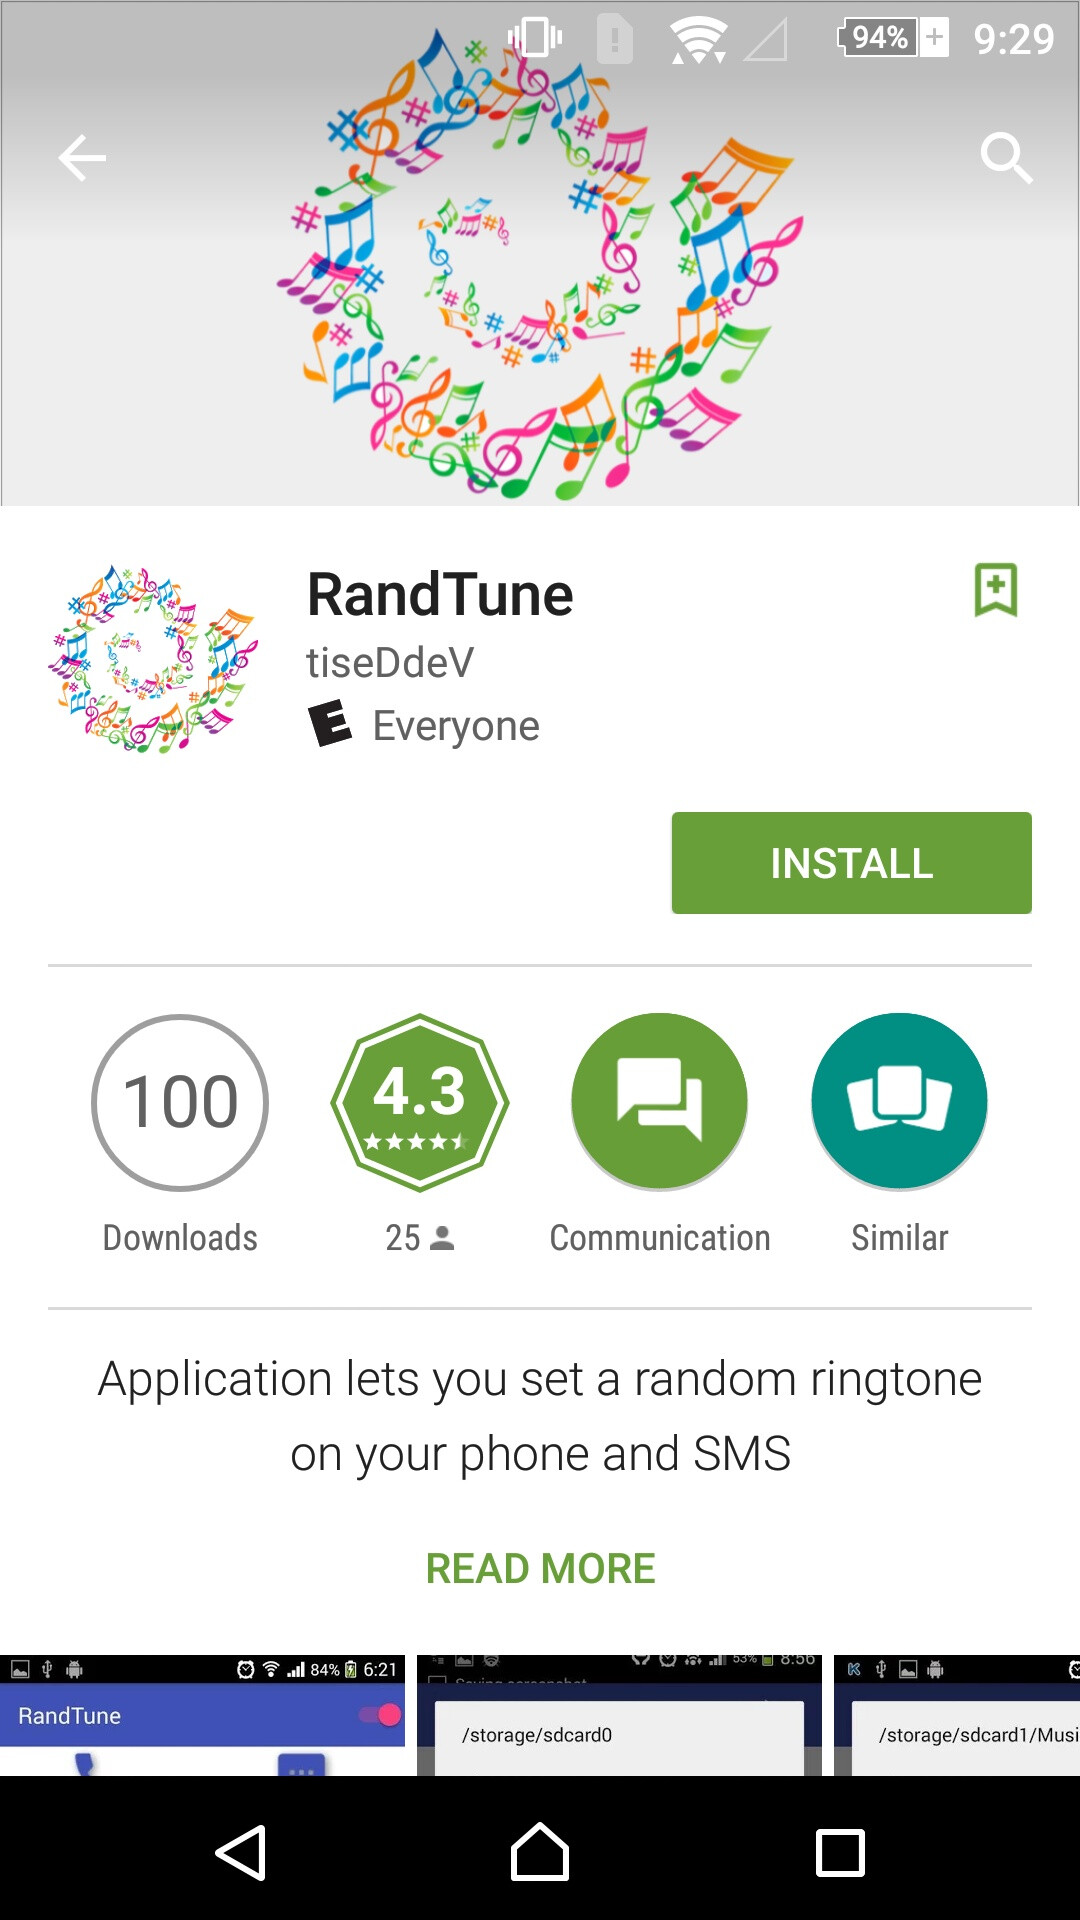 Phone Free Notification Sounds Android Phone how to randomize ringtone and notification sounds on your android device with a simple app